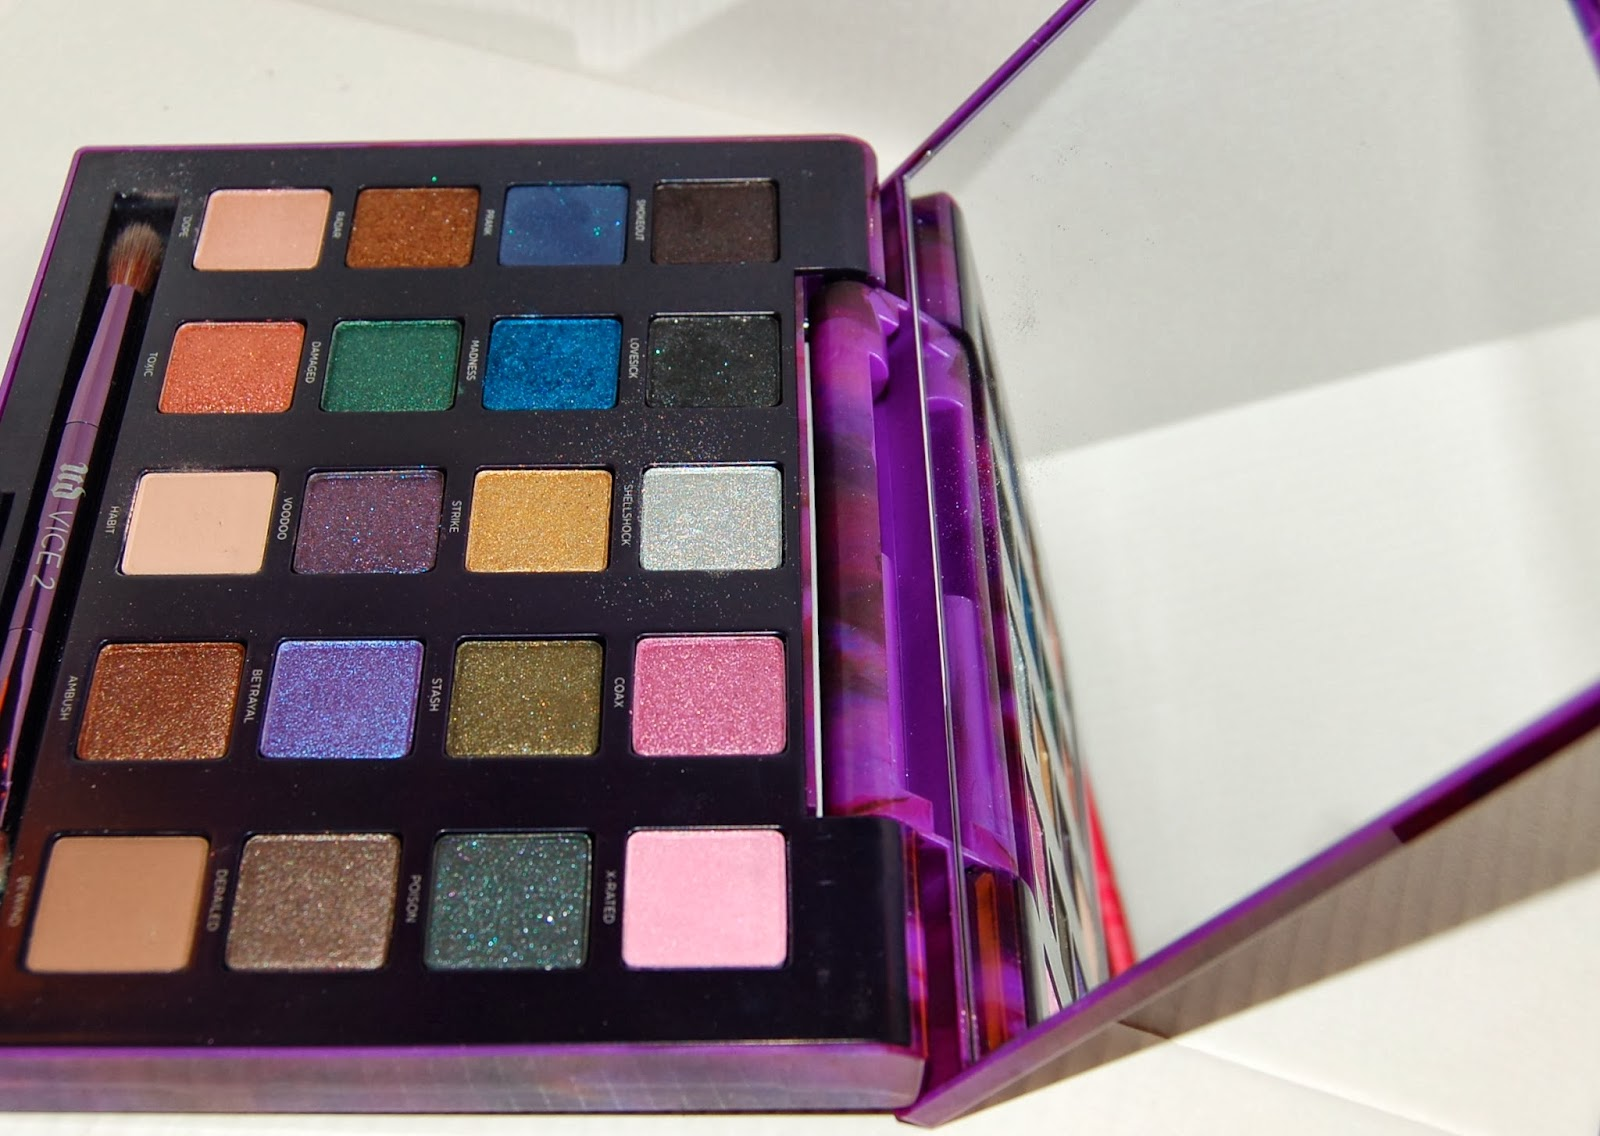 Urban Decay Vice 2 Eye Shadow Palette For Holiday 2013 ... |Urban Decay Palette 2